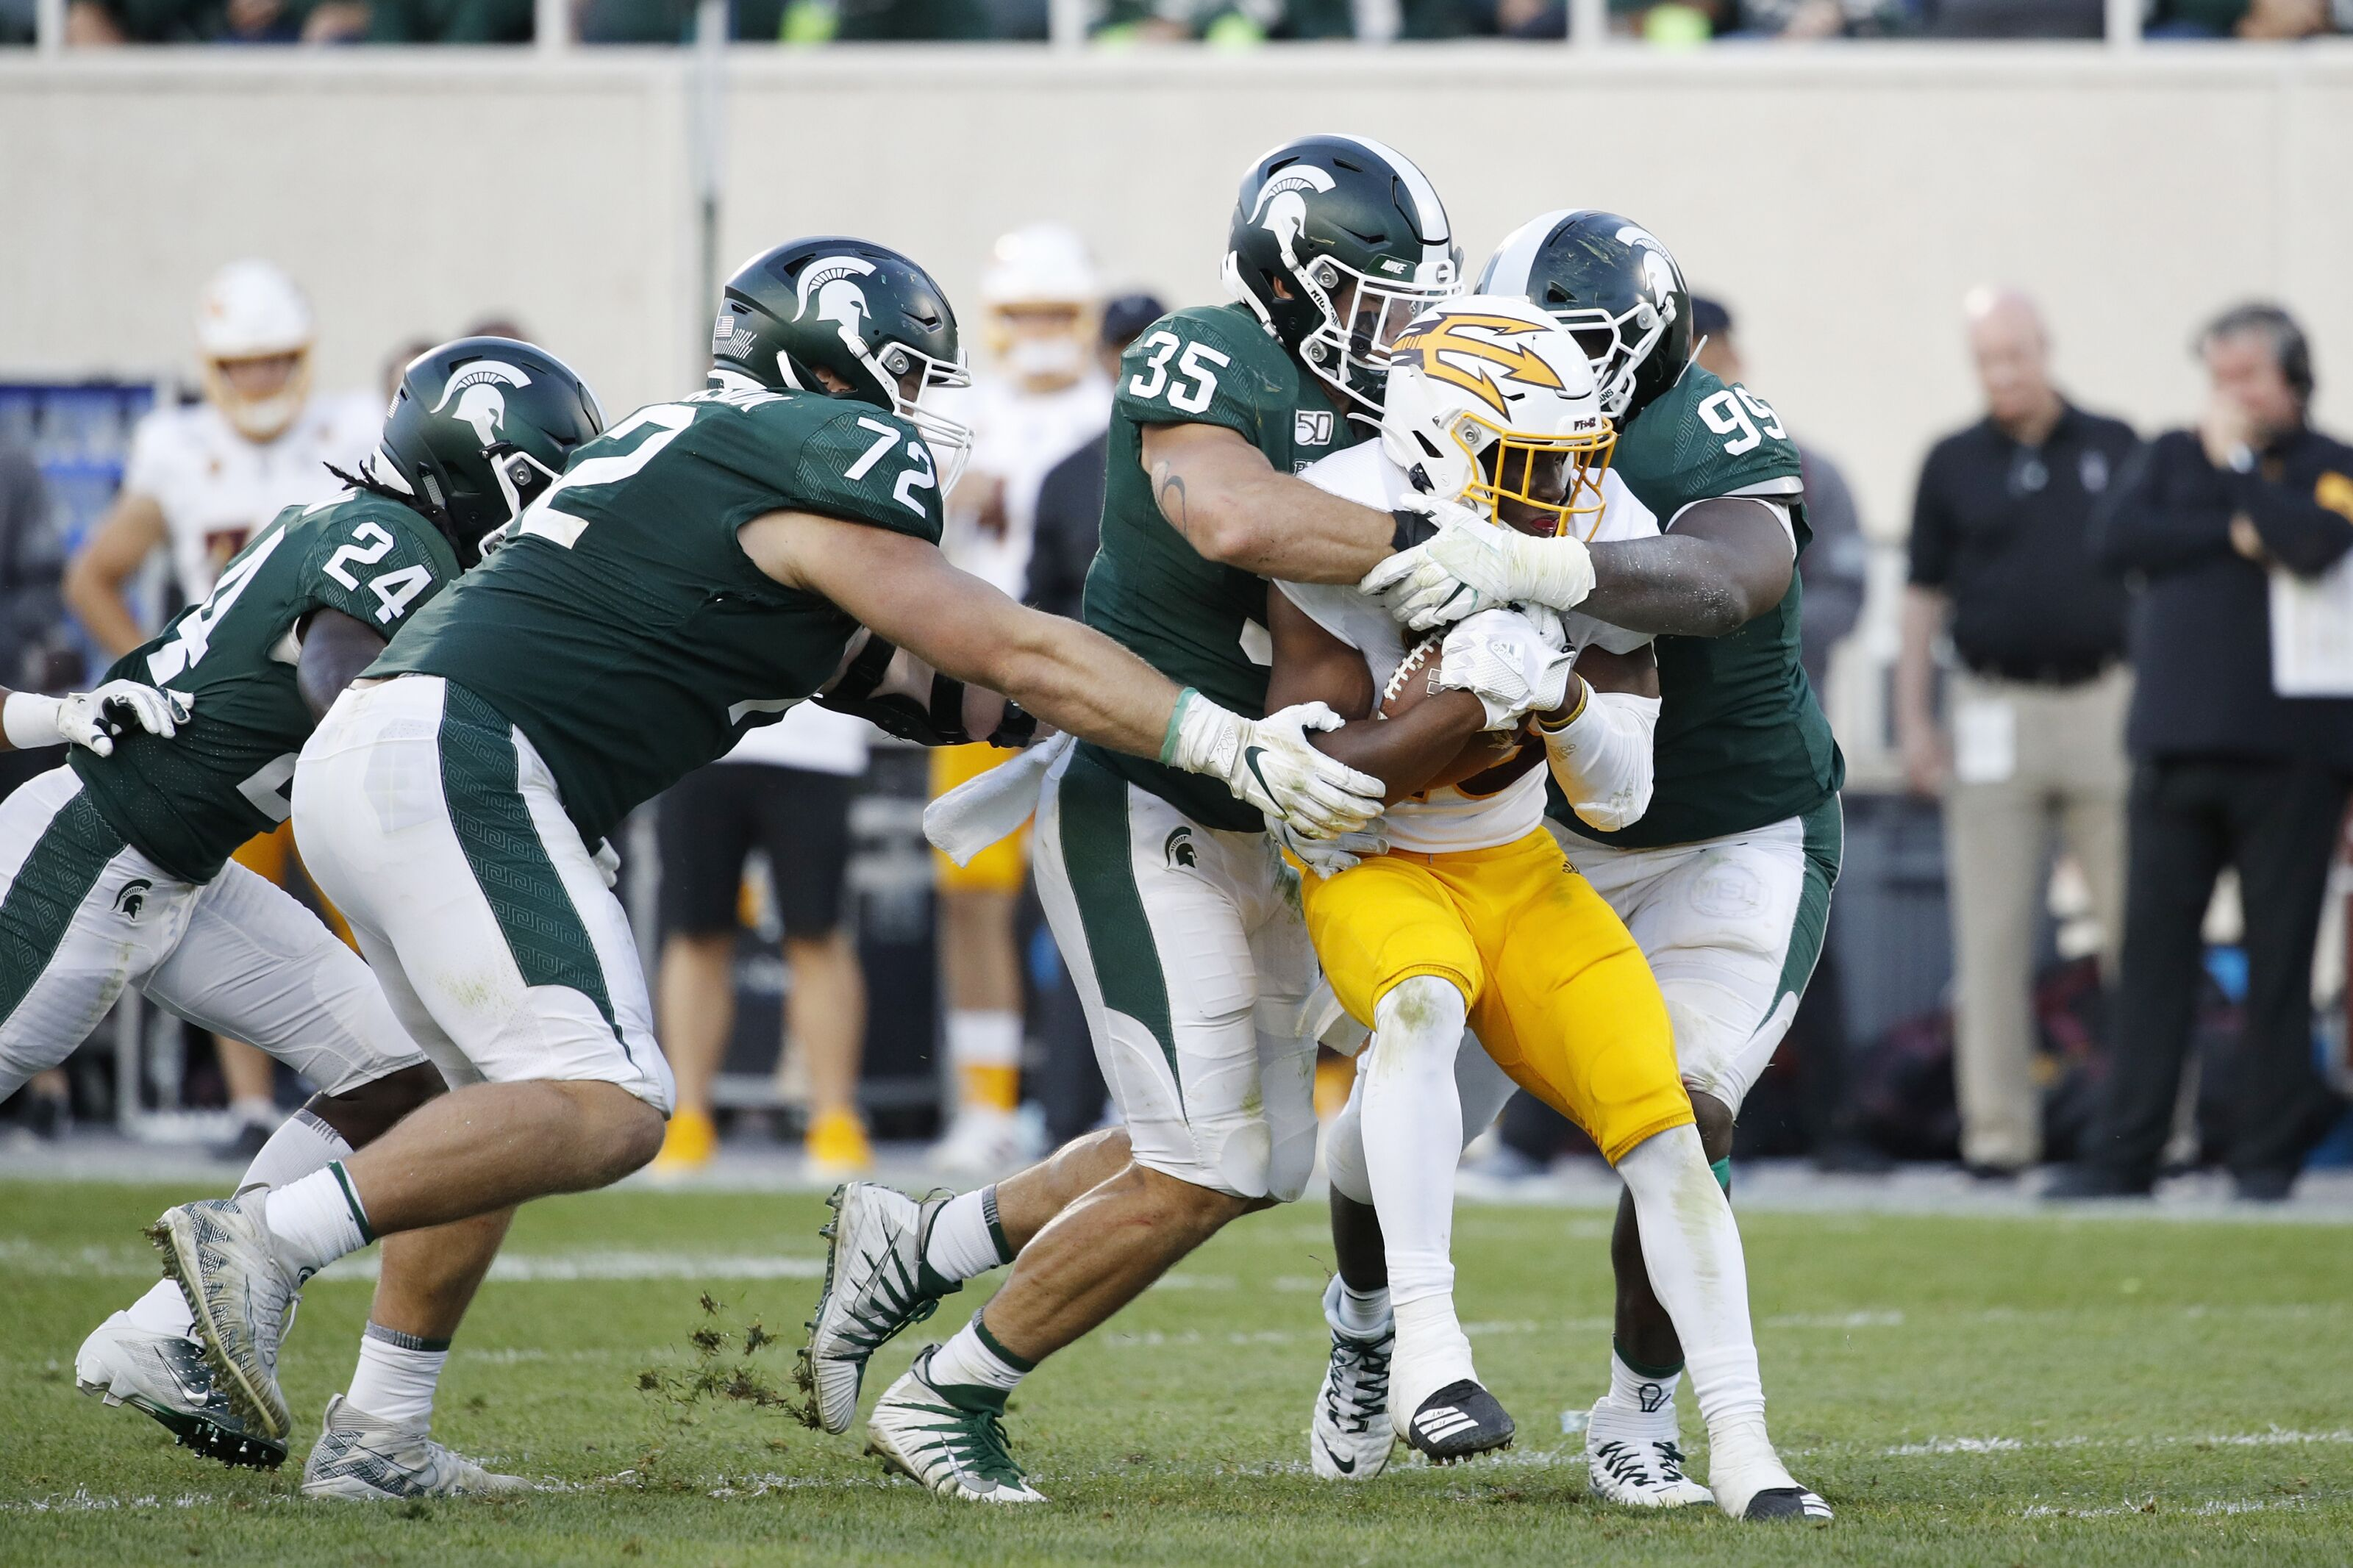 Michigan State Football: Where do Spartans go after Arizona State loss?